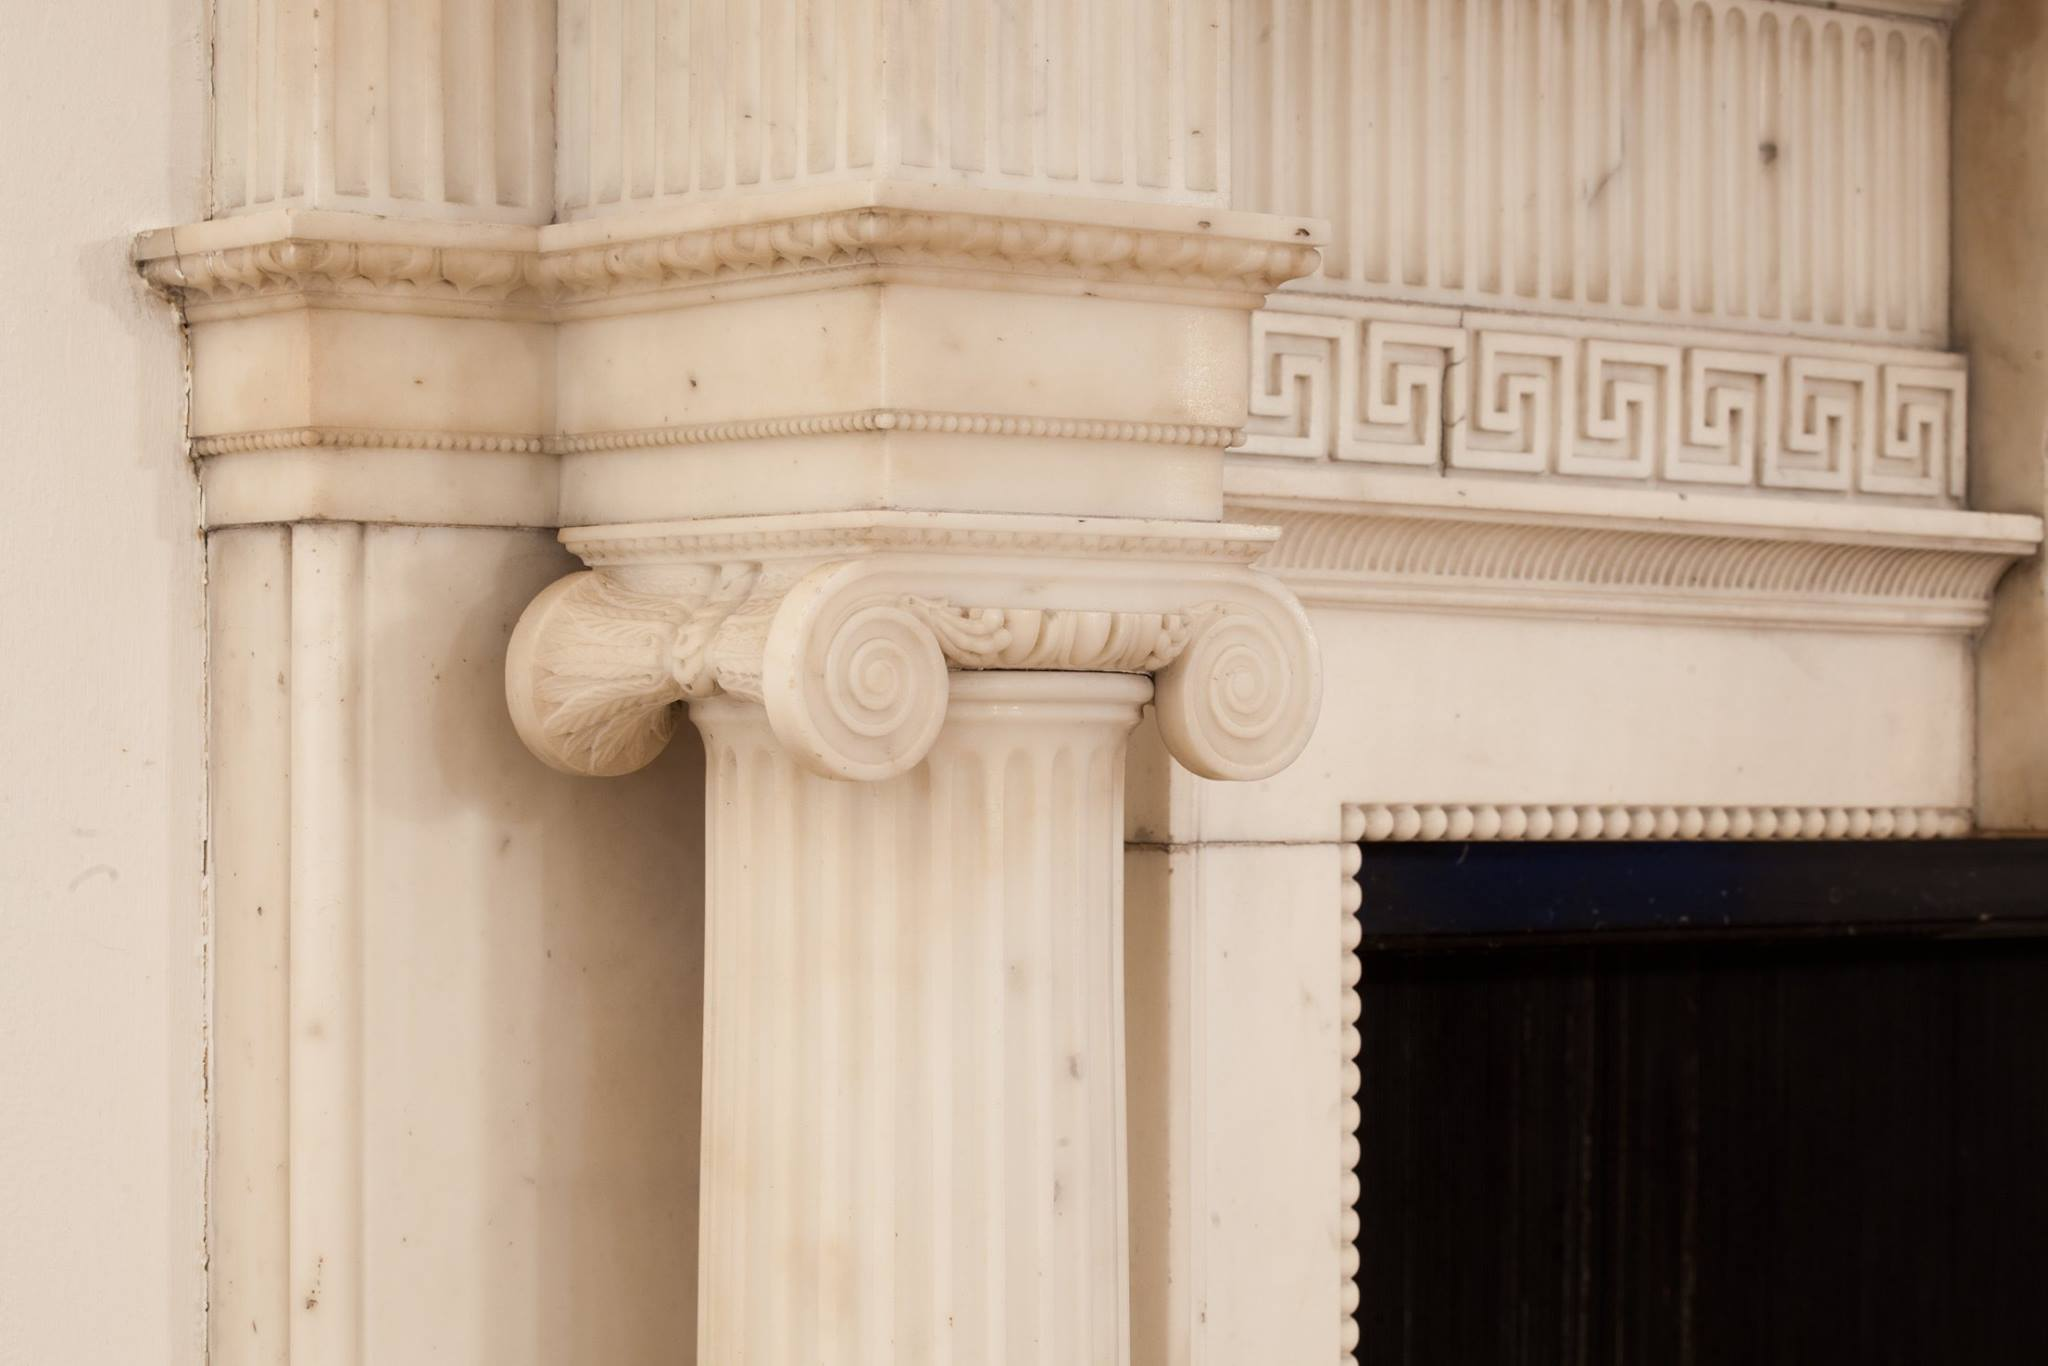 Central carving by Joseph Mazza Bonon, 1711 marble fireplace from kings weston house in orchard Street